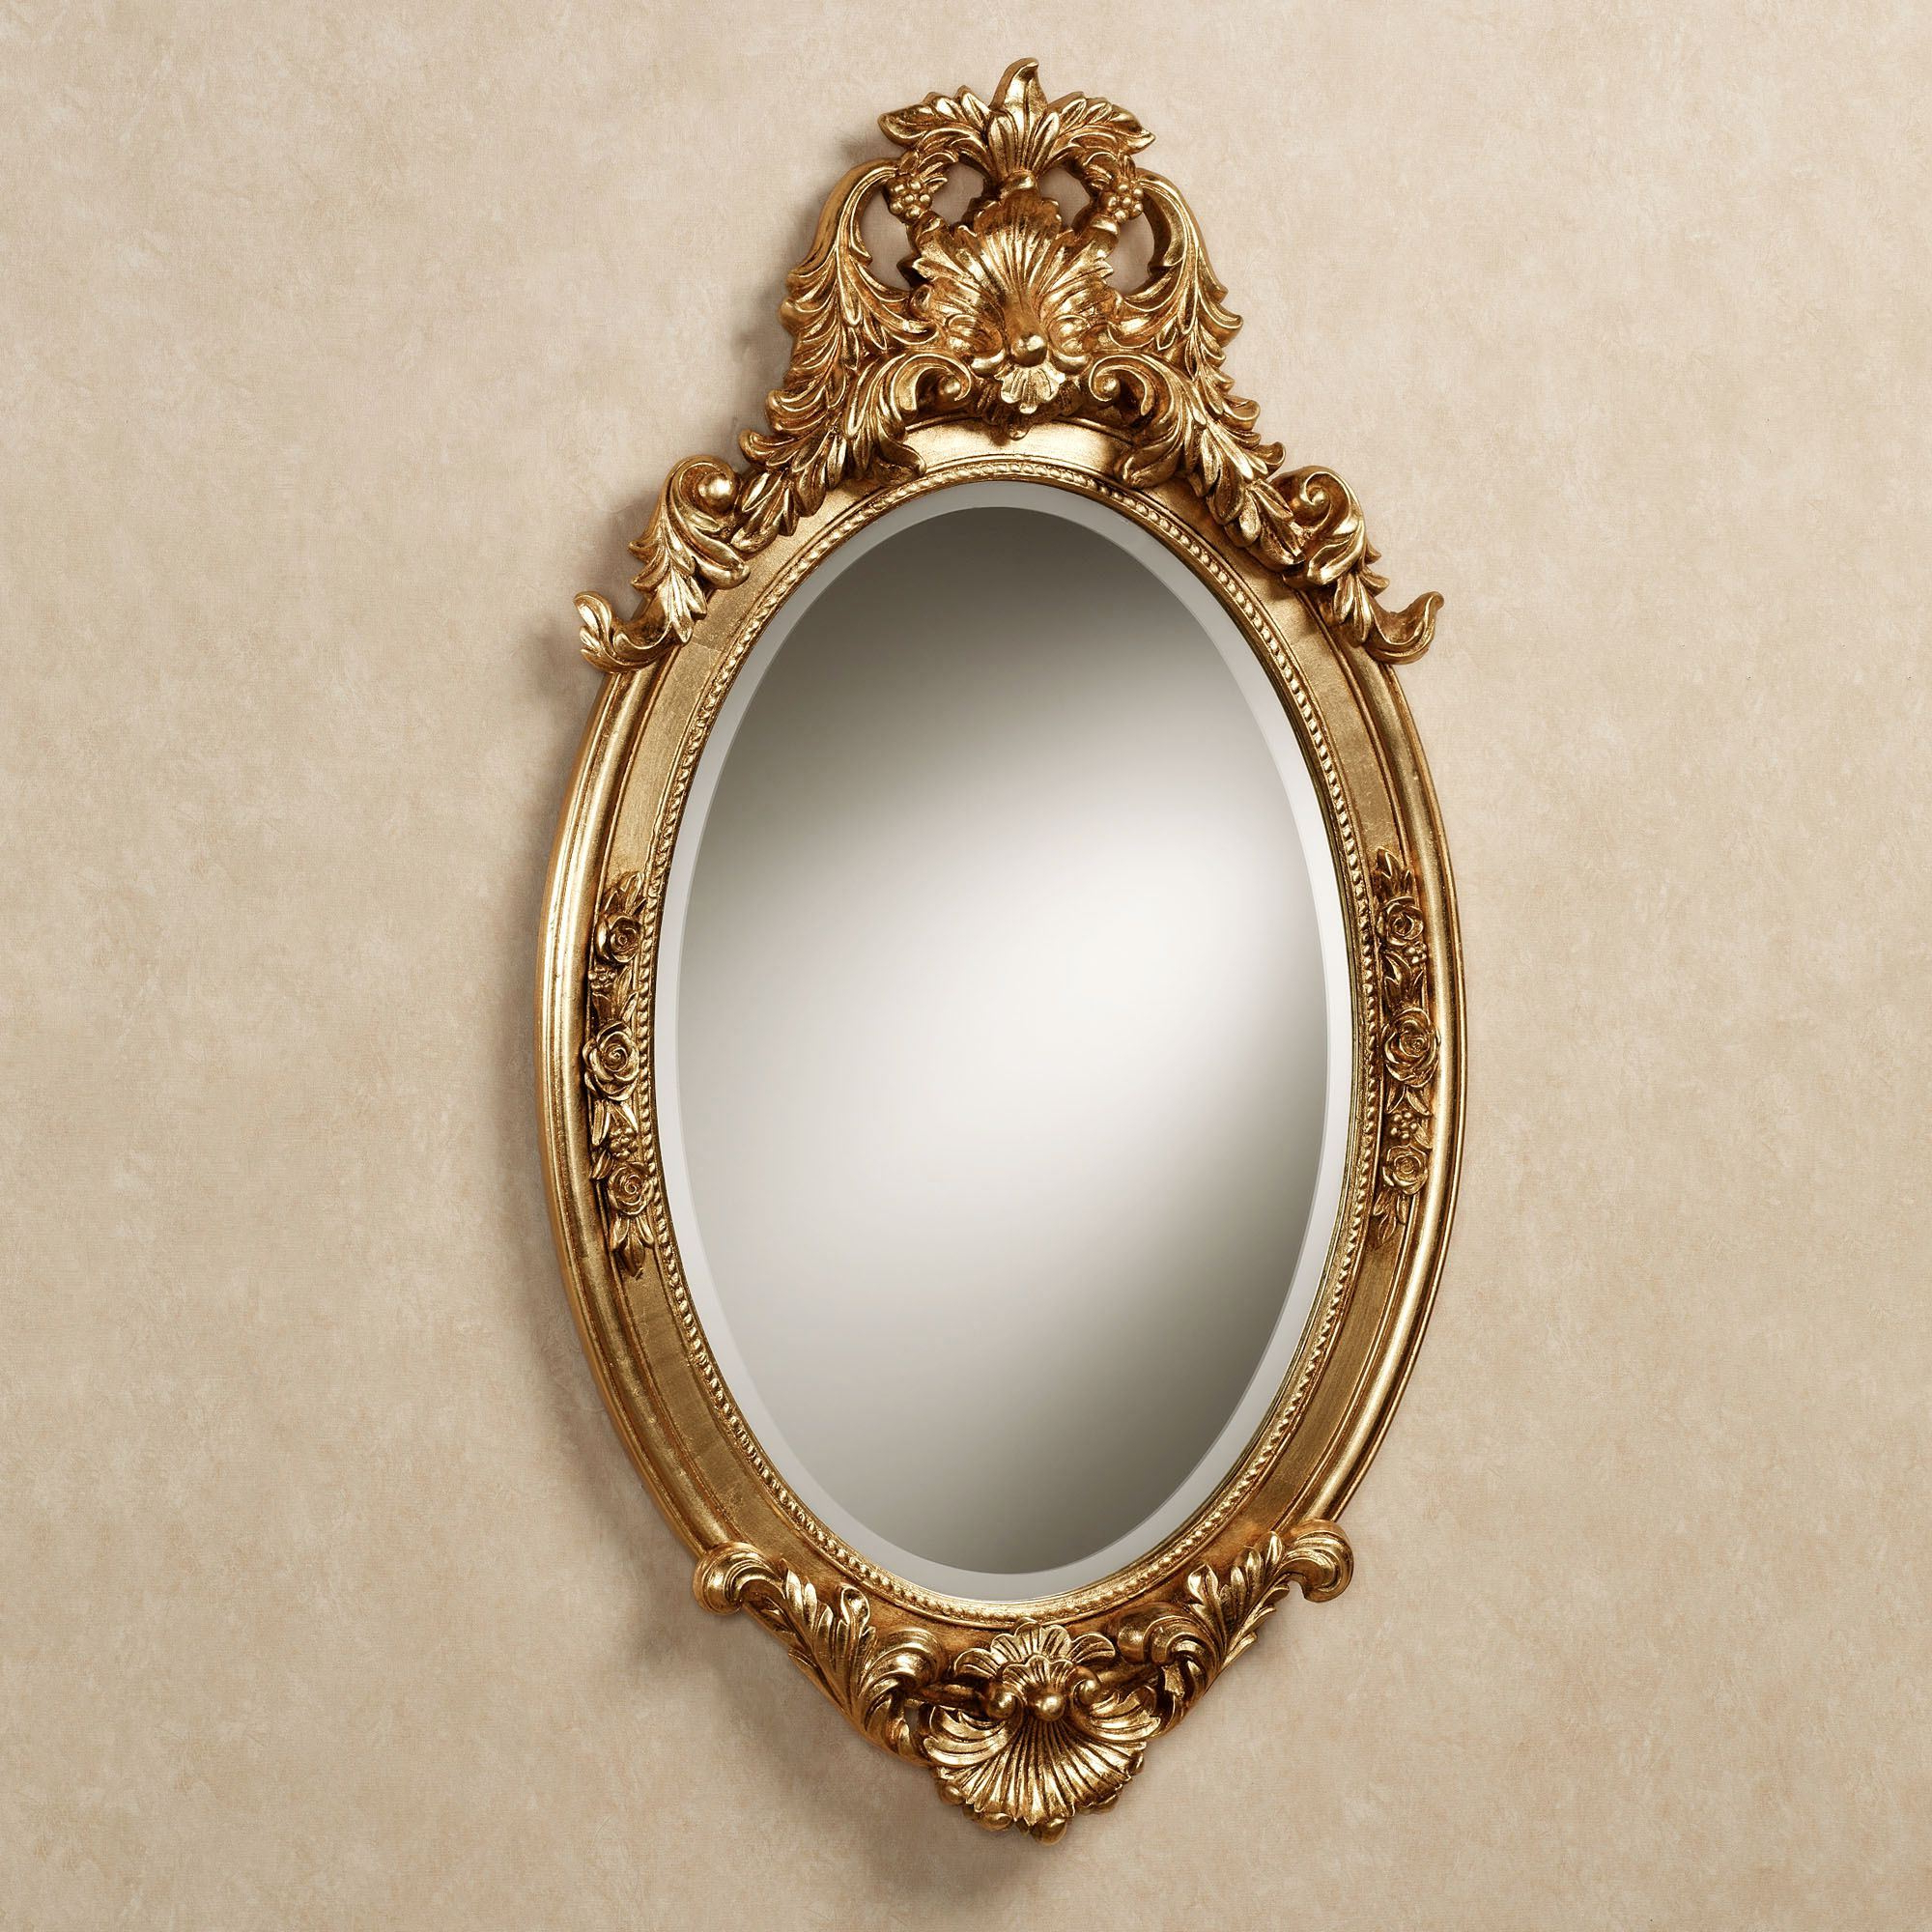 Decorative Oval Mirrors Small Gold Frame Antique Mirror For 2019 Small Gold Wall Mirrors (View 16 of 20)